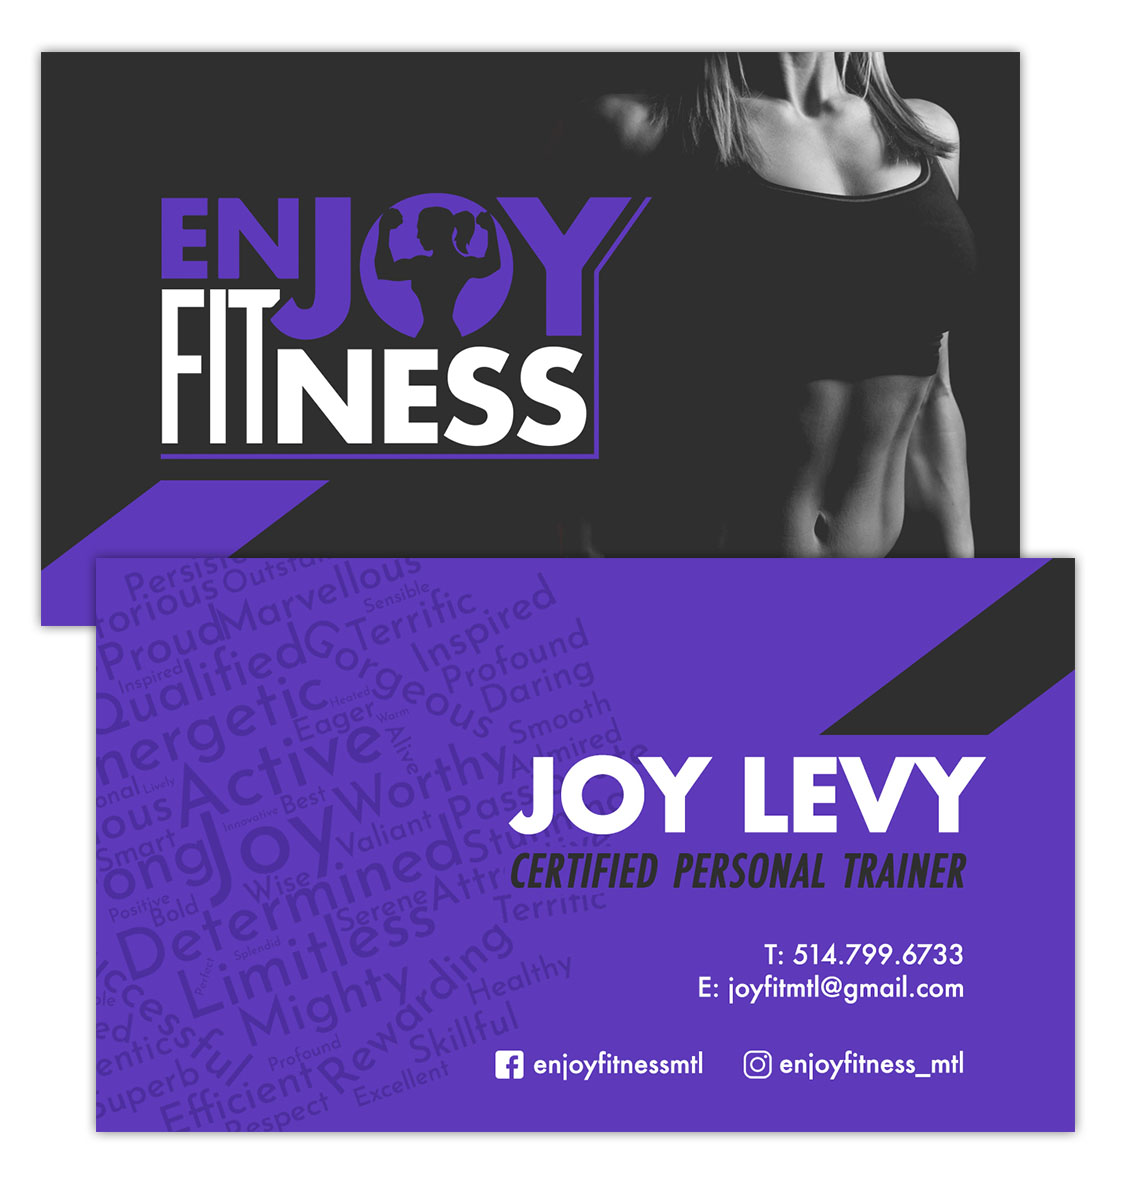 EnJoy Fitness Business Card design purple